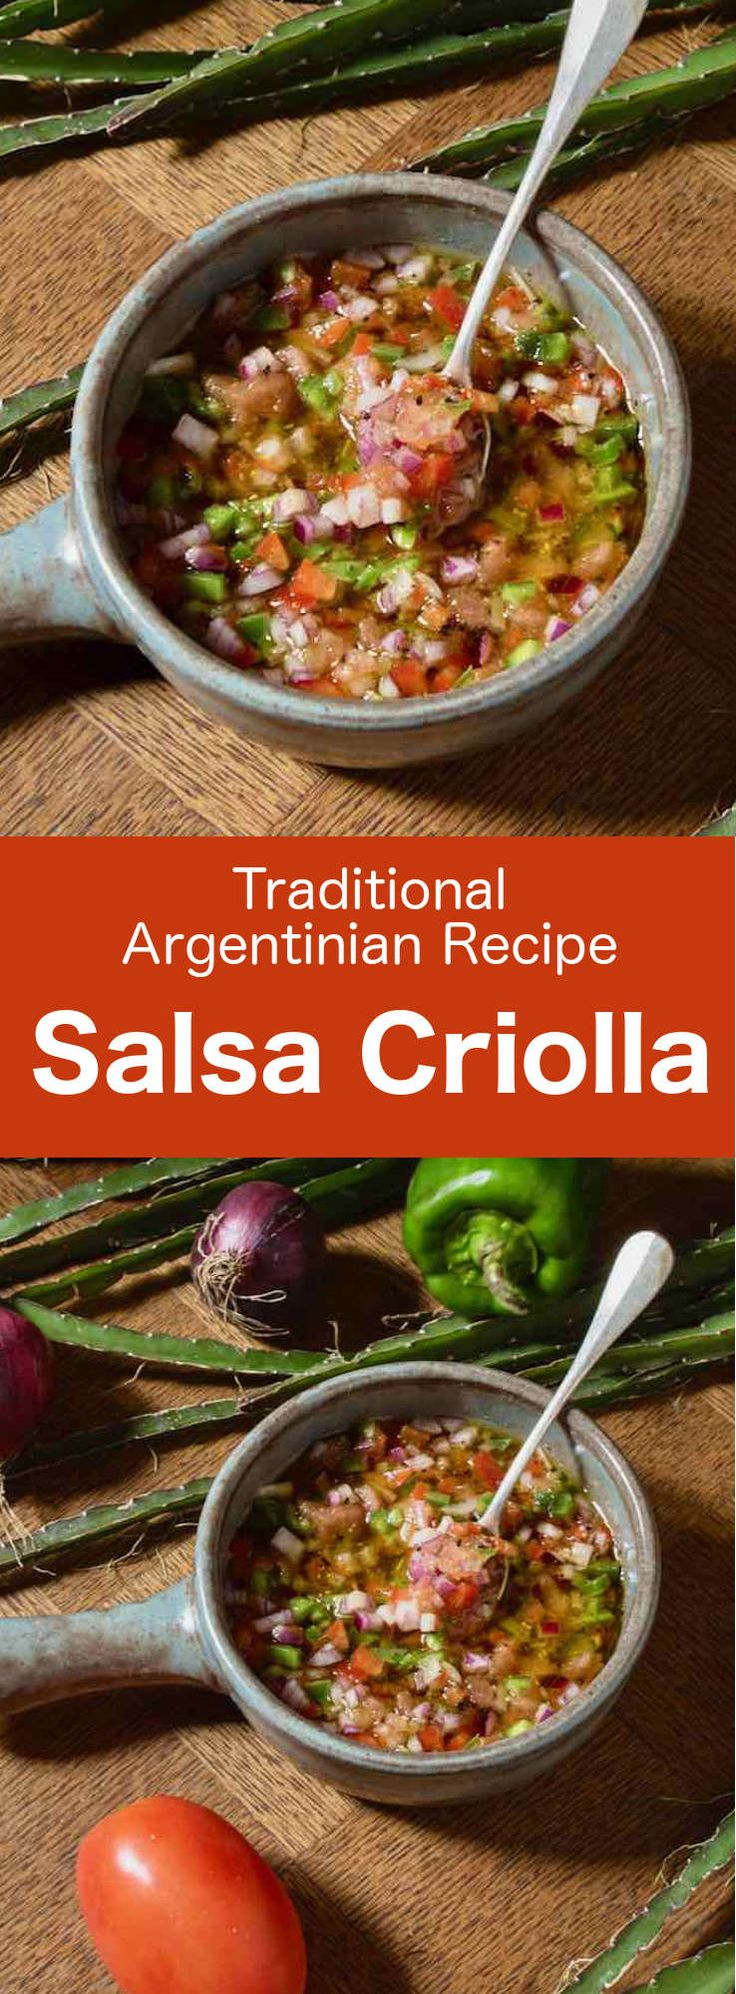 Salsa criolla (sarza criolla) is a South American sauce made with onion, tomato,…